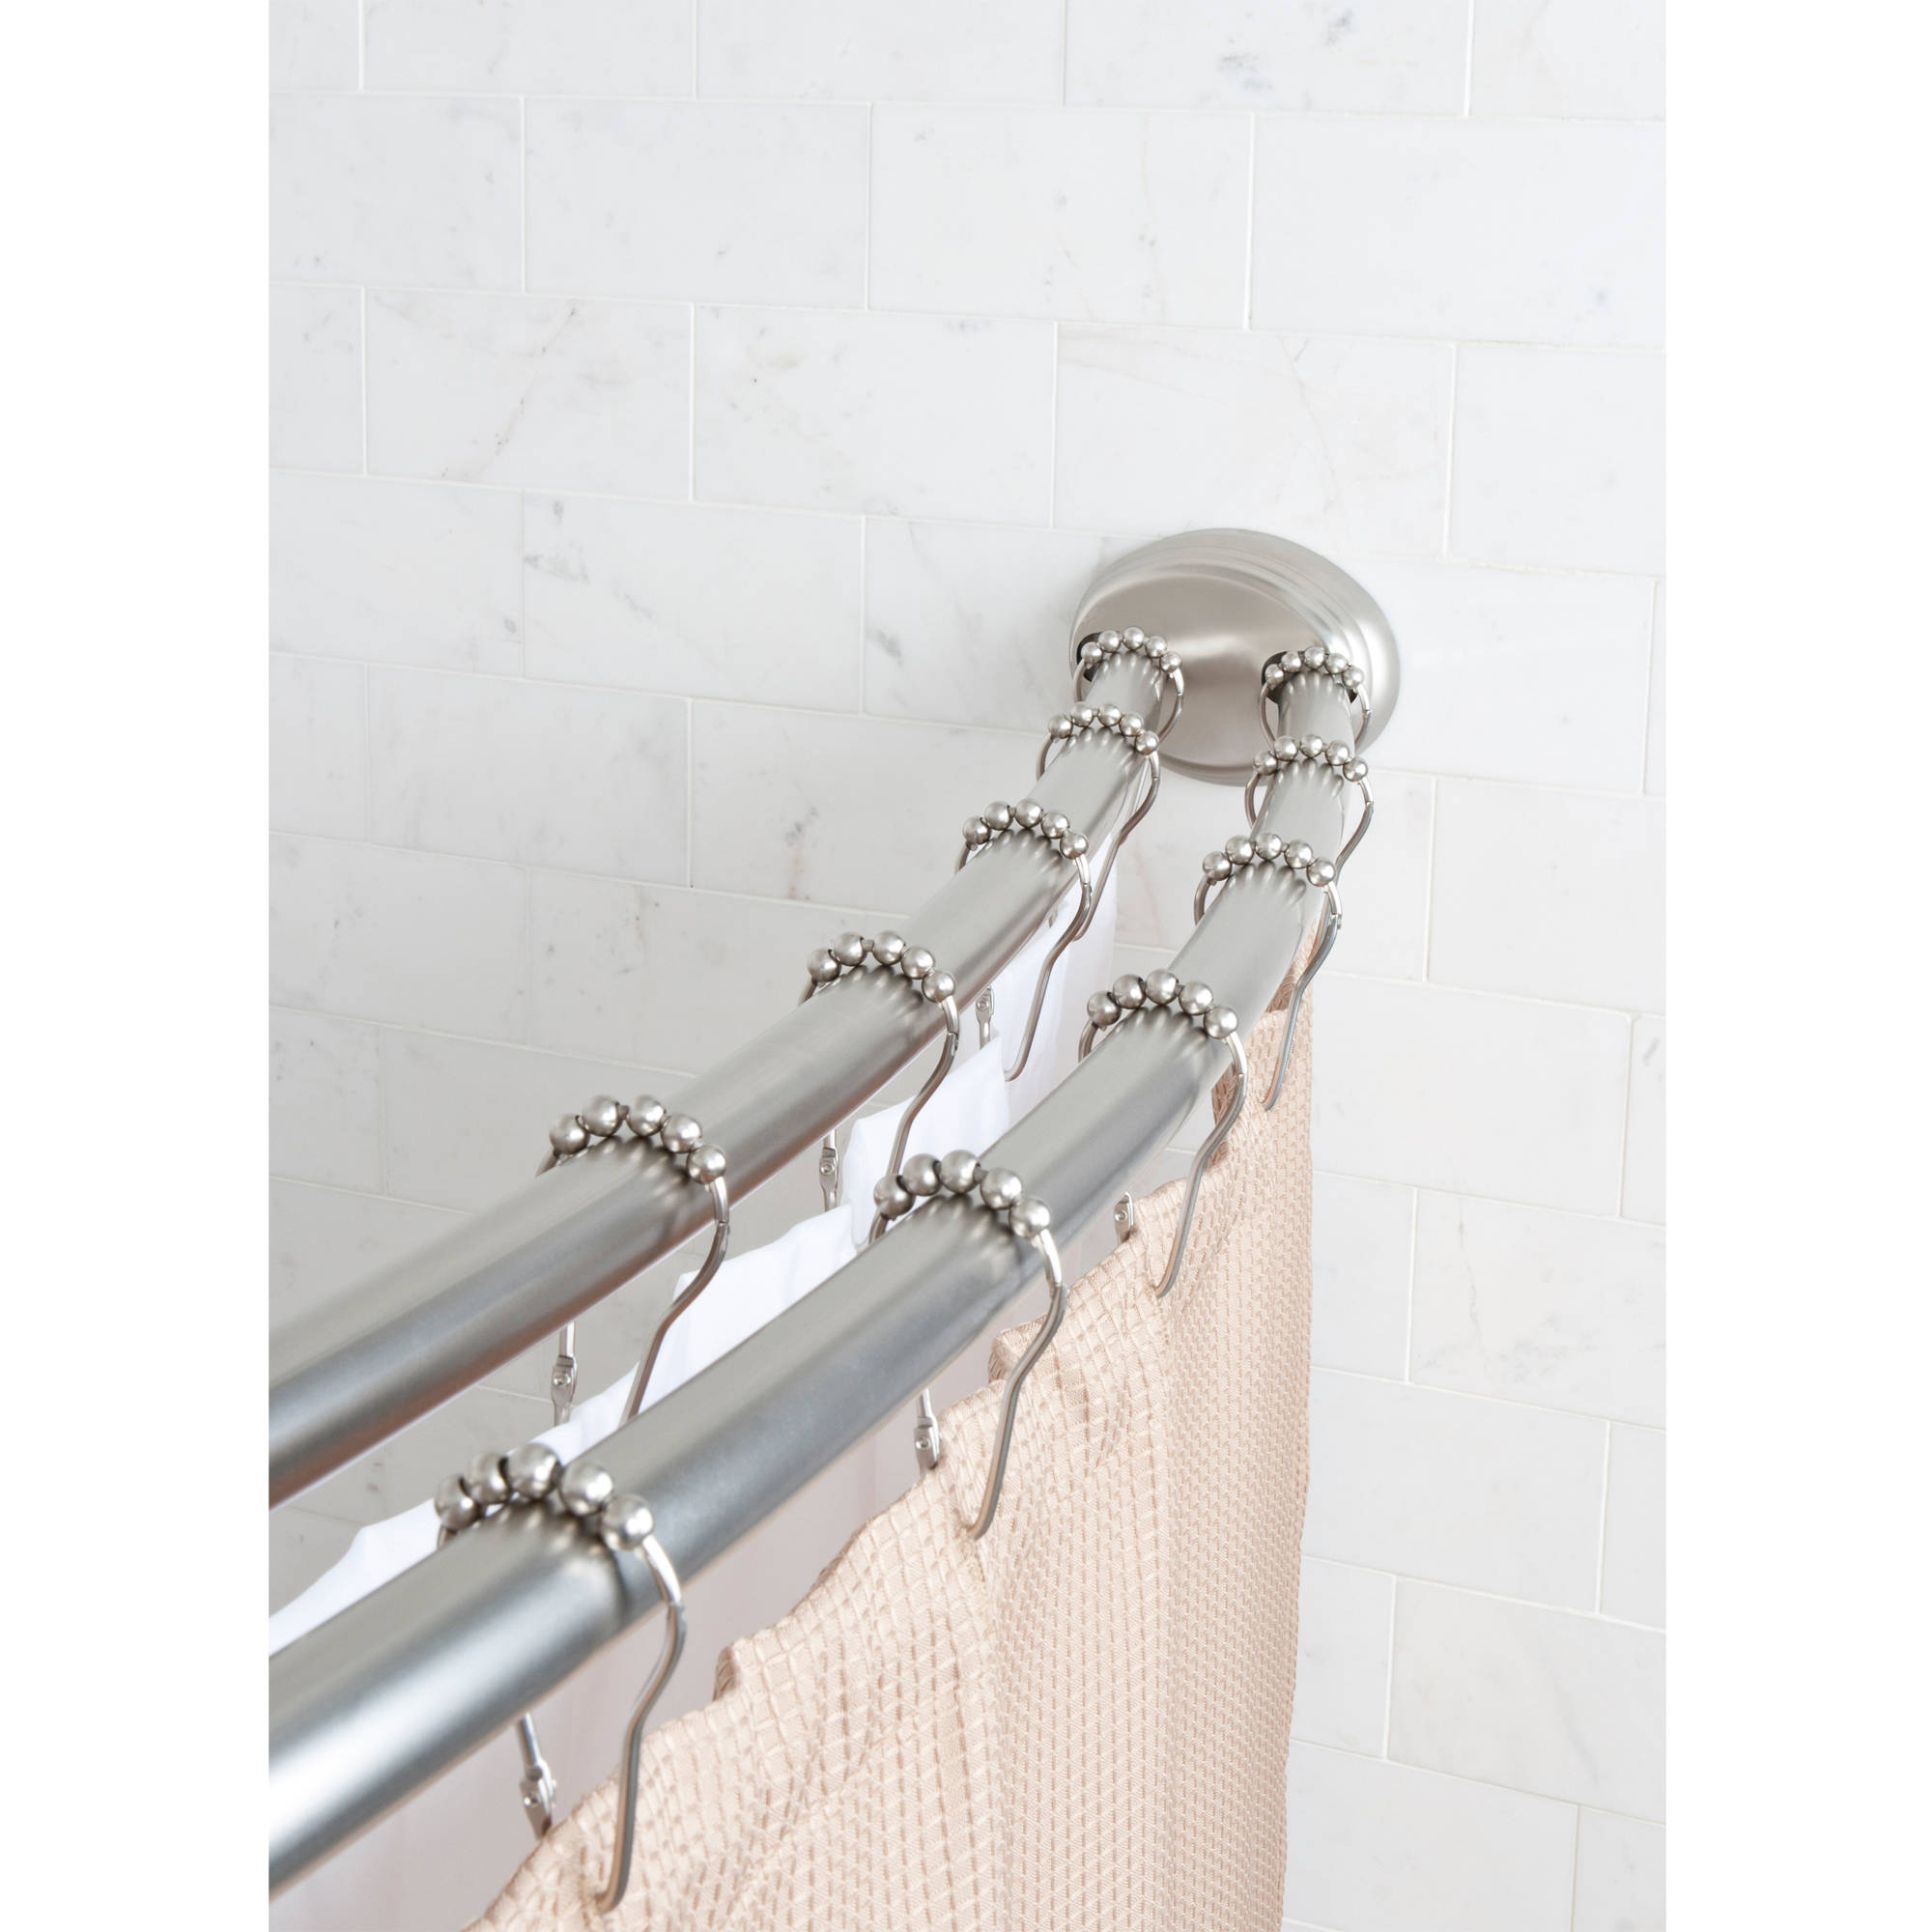 Exciting Bathroom Decor Ideas with Shower Curtain Tension Rod: Bathroom Curtain Rods | Tension Shower Curtain Rod | Shower Curtain Tension Rod